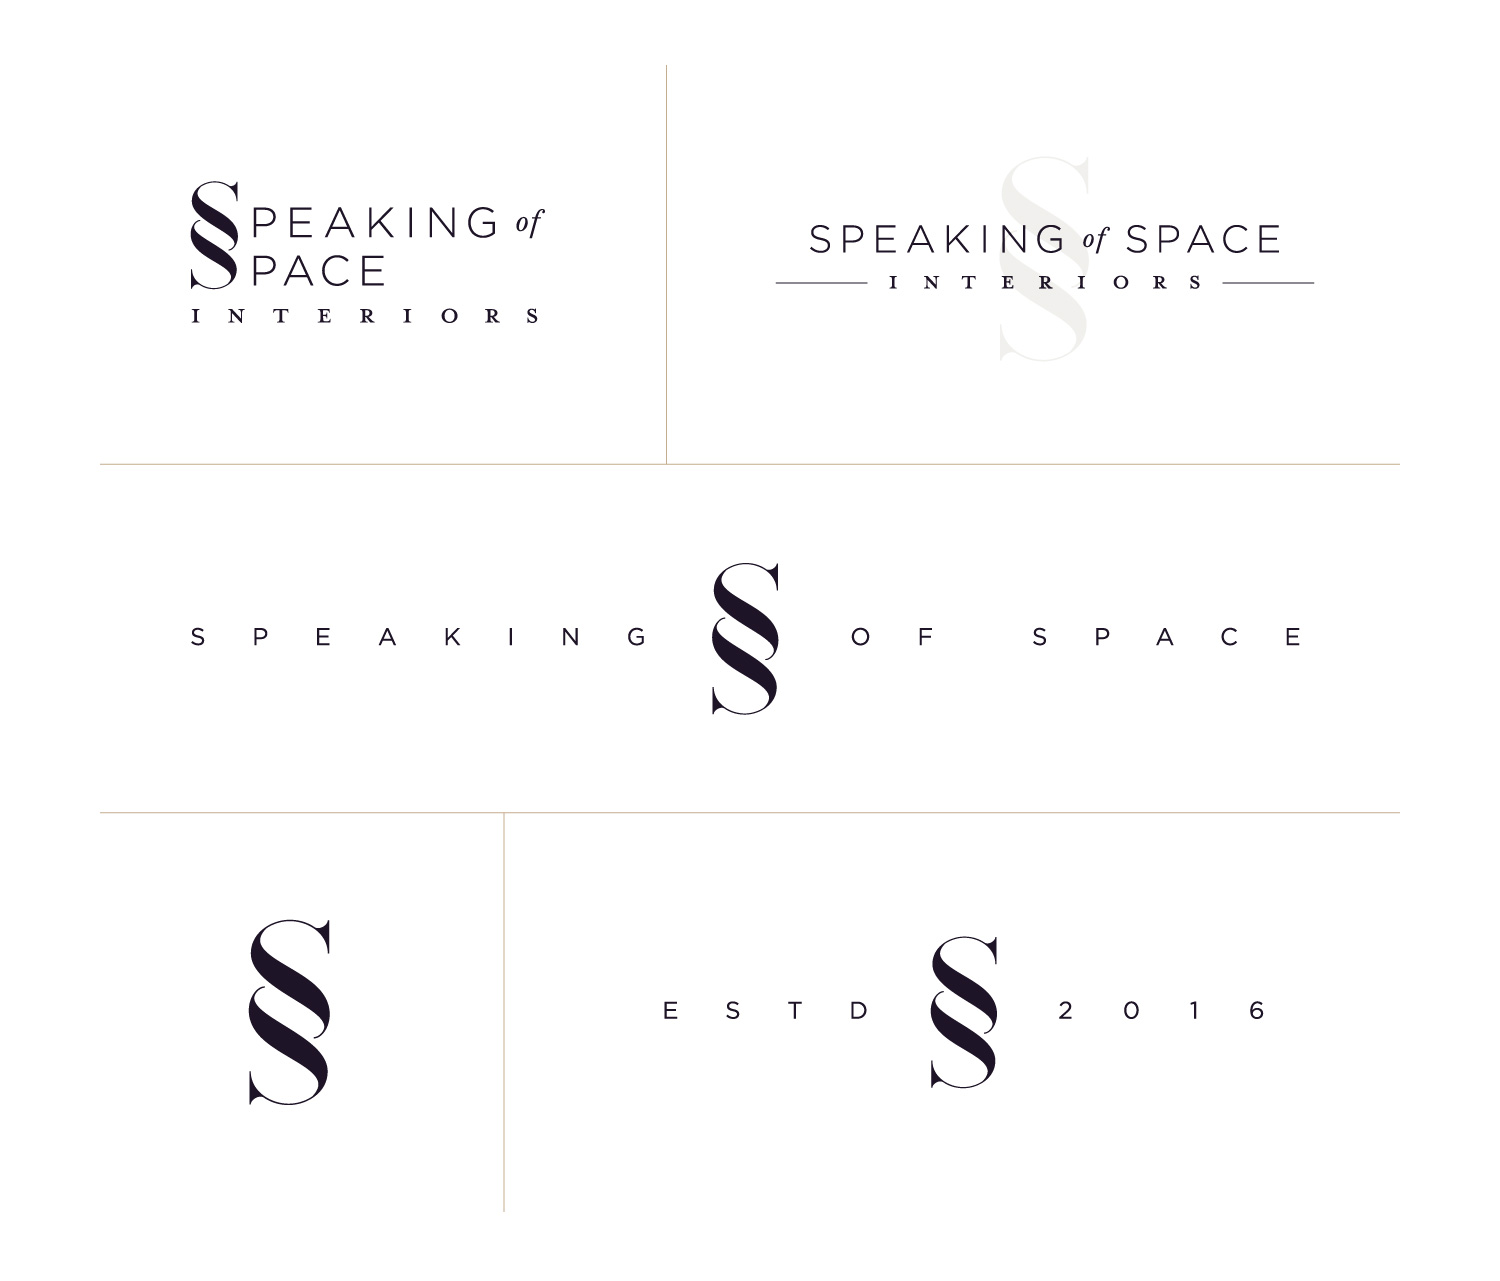 Speaking of Space - Logos & Marks